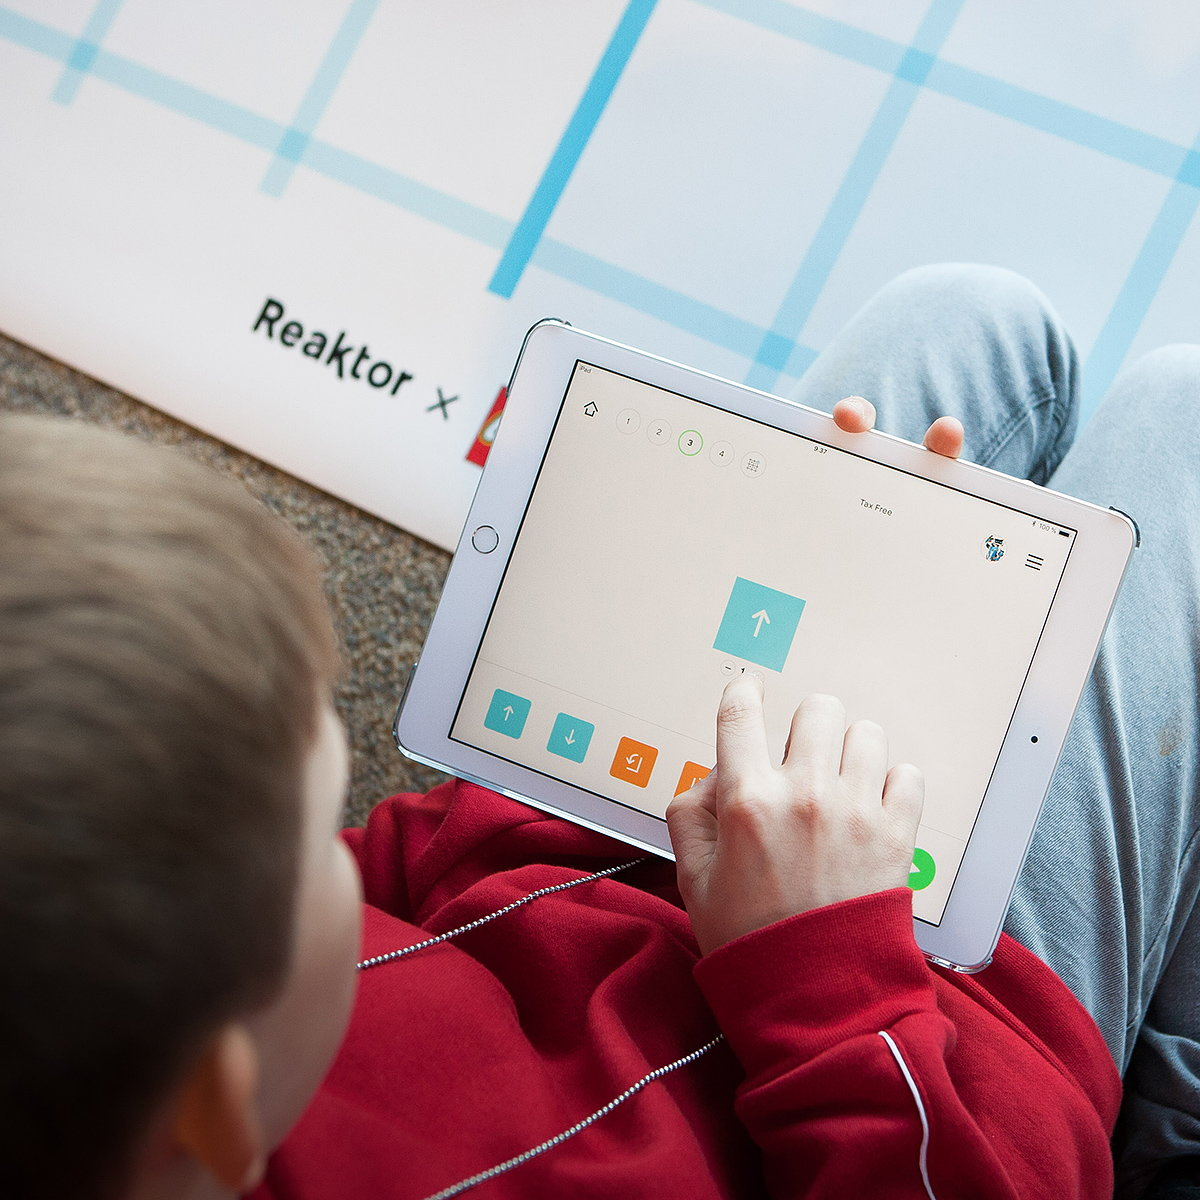 LEGO Opens Kids' Coding School at Helsinki Airport